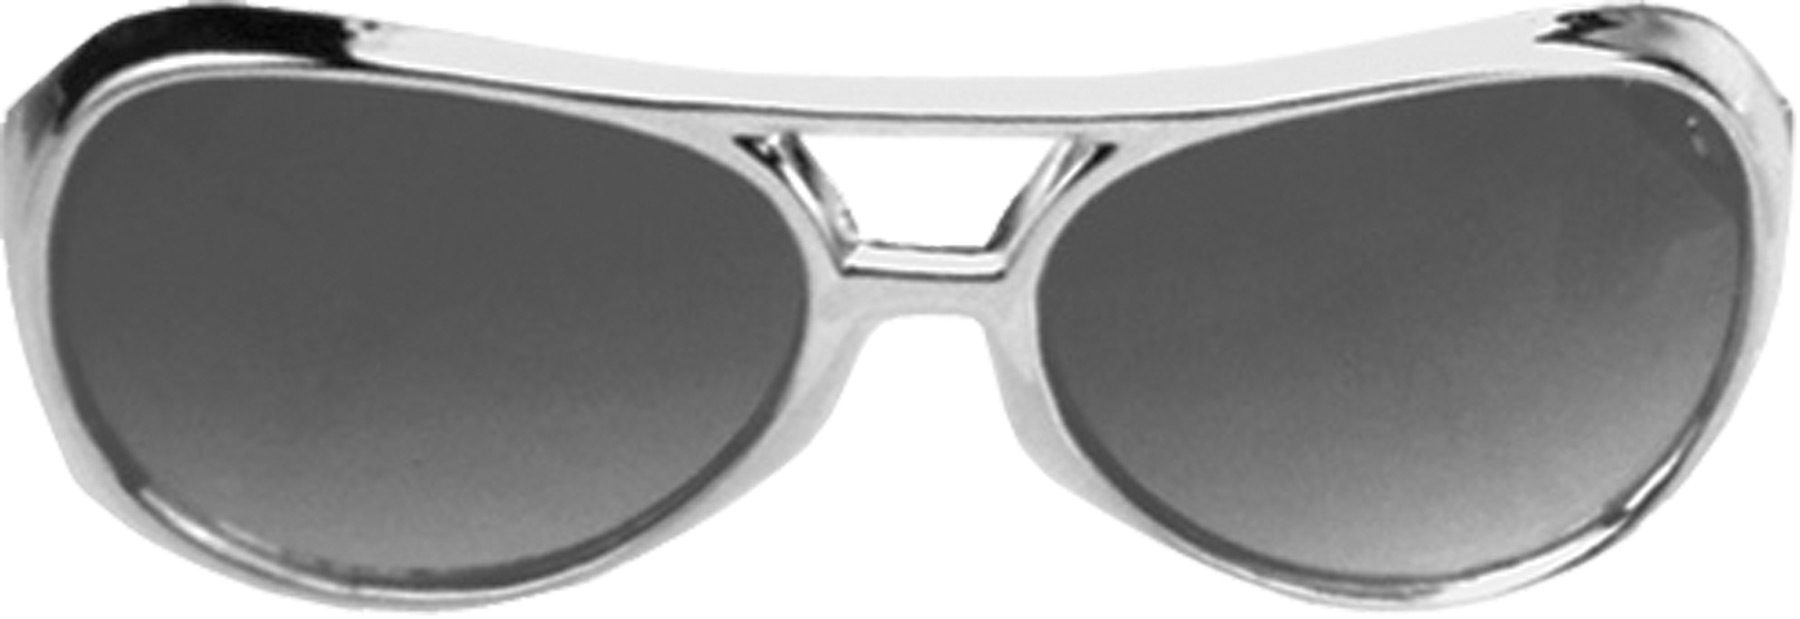 Featured Image for Rock N' Roll Glasses